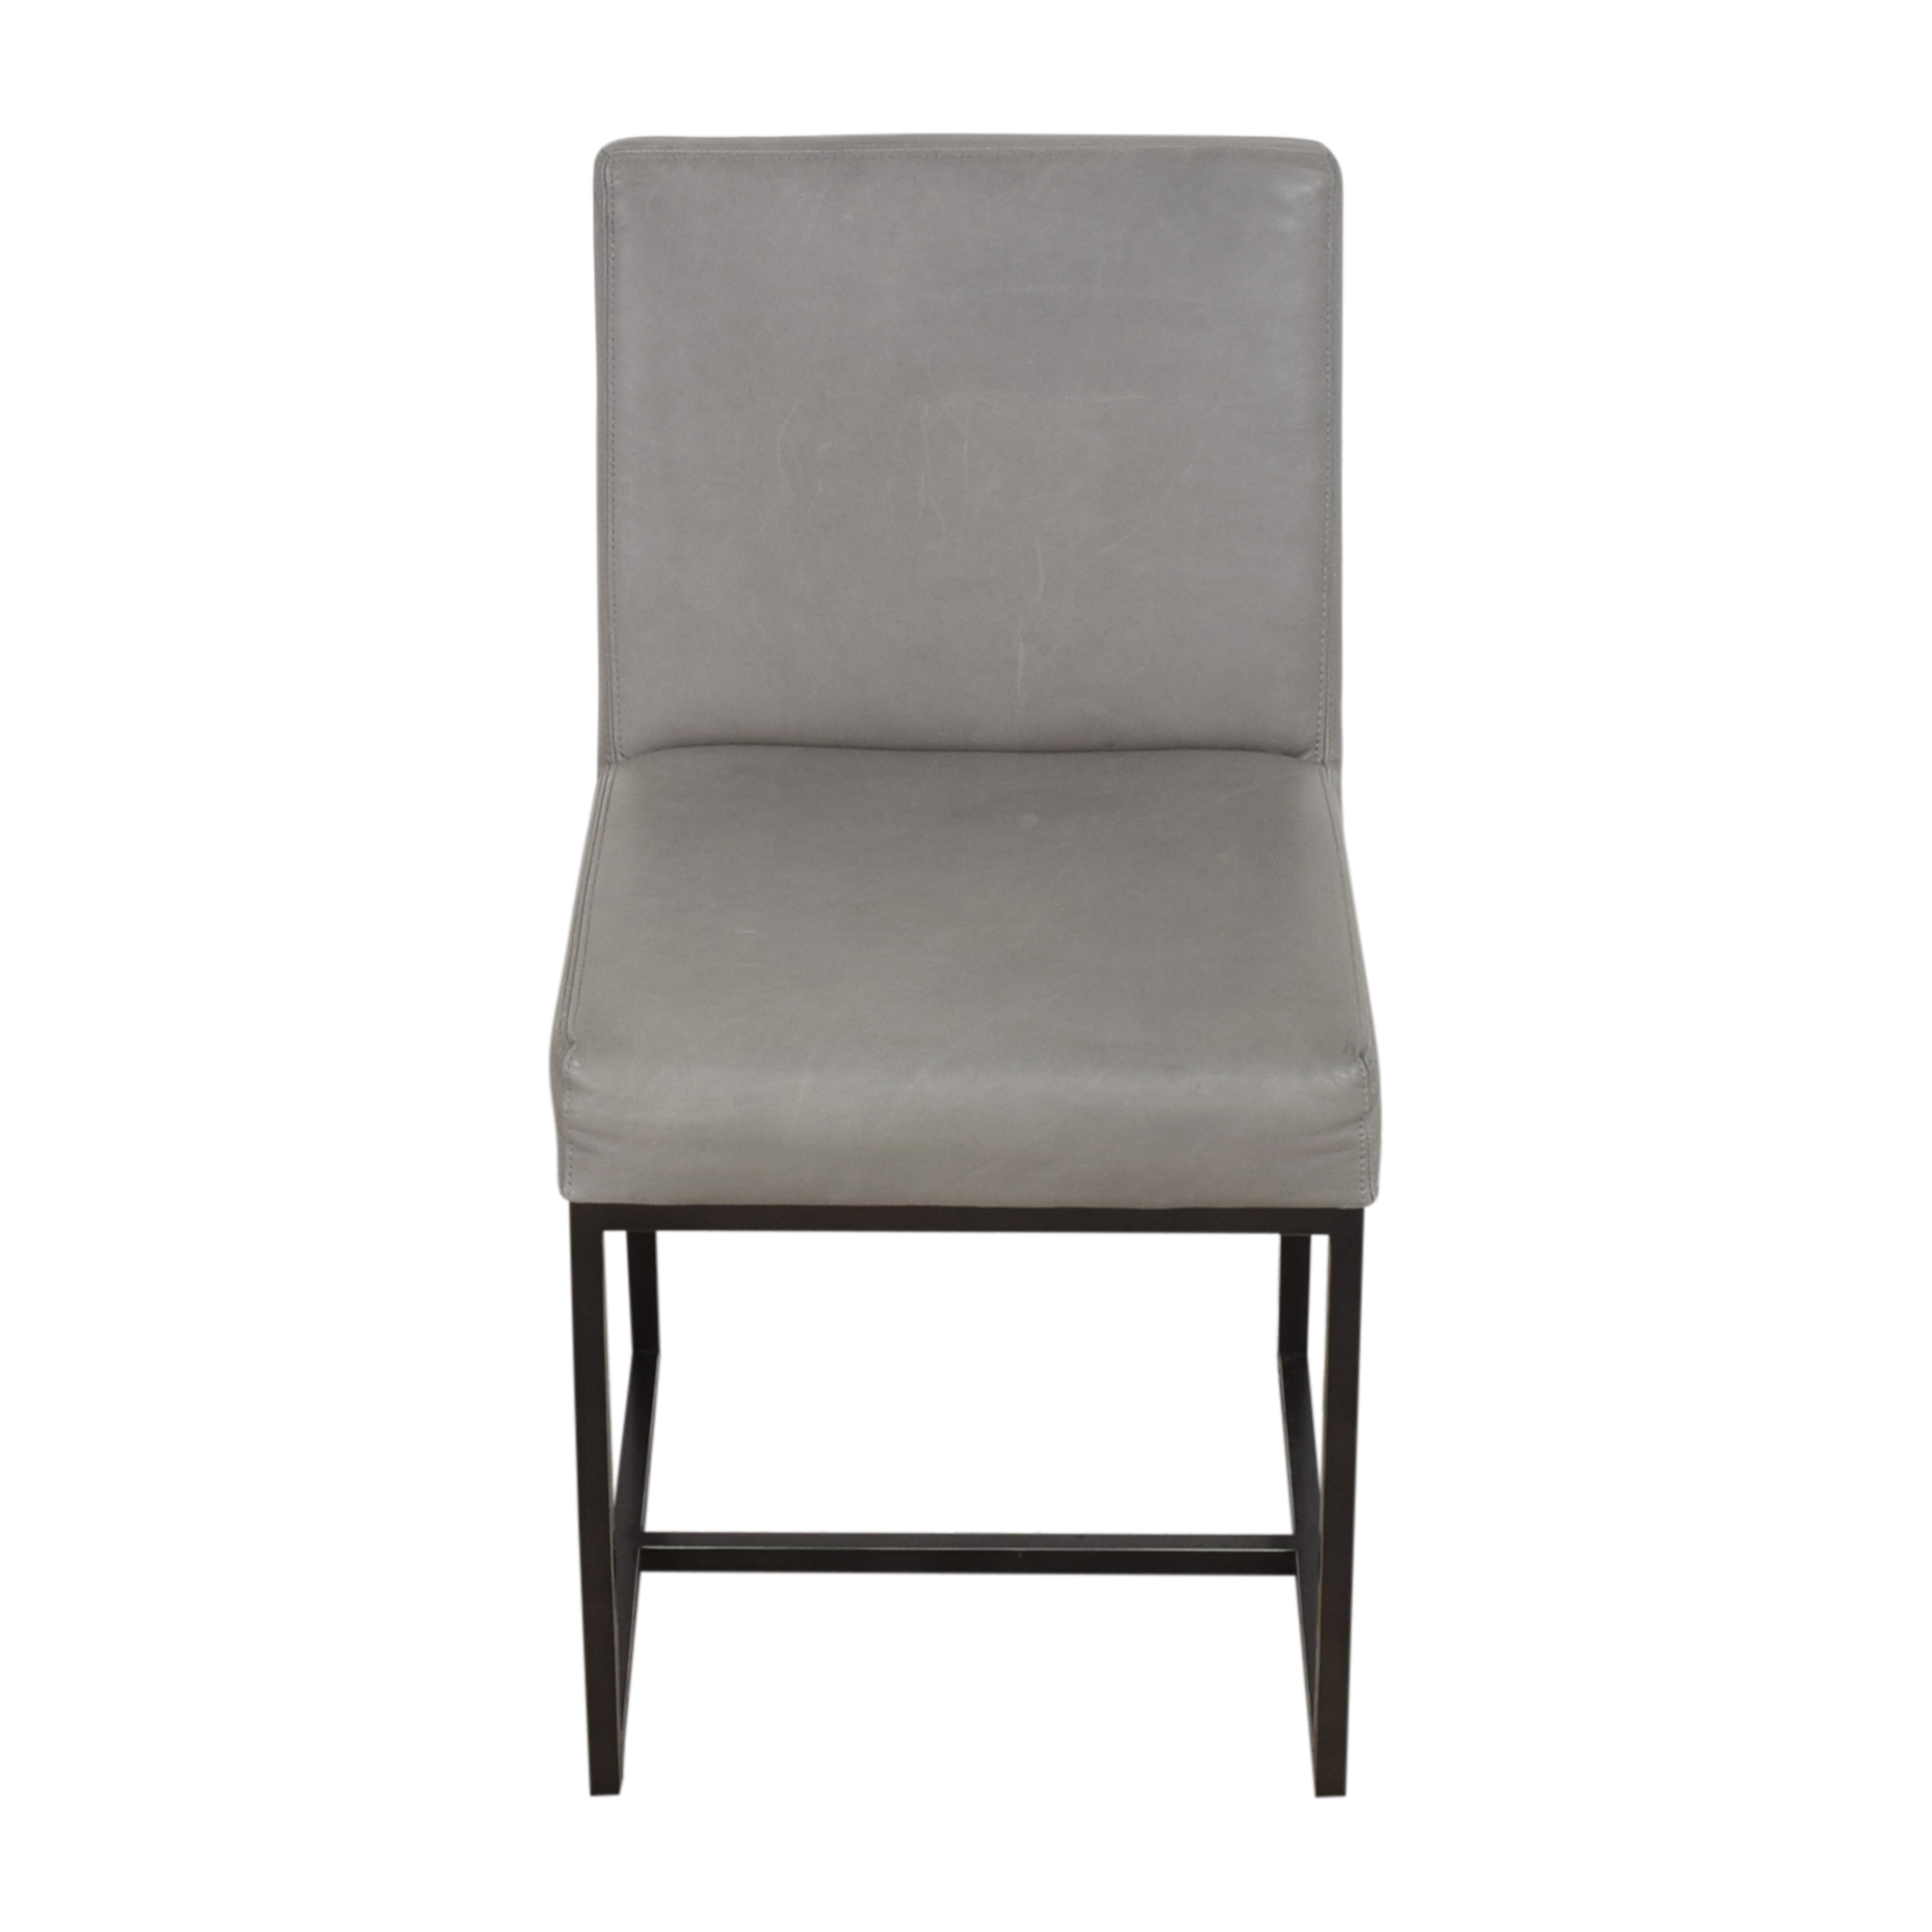 Restoration Hardware Restoration Hardware Emery Side Chair pa